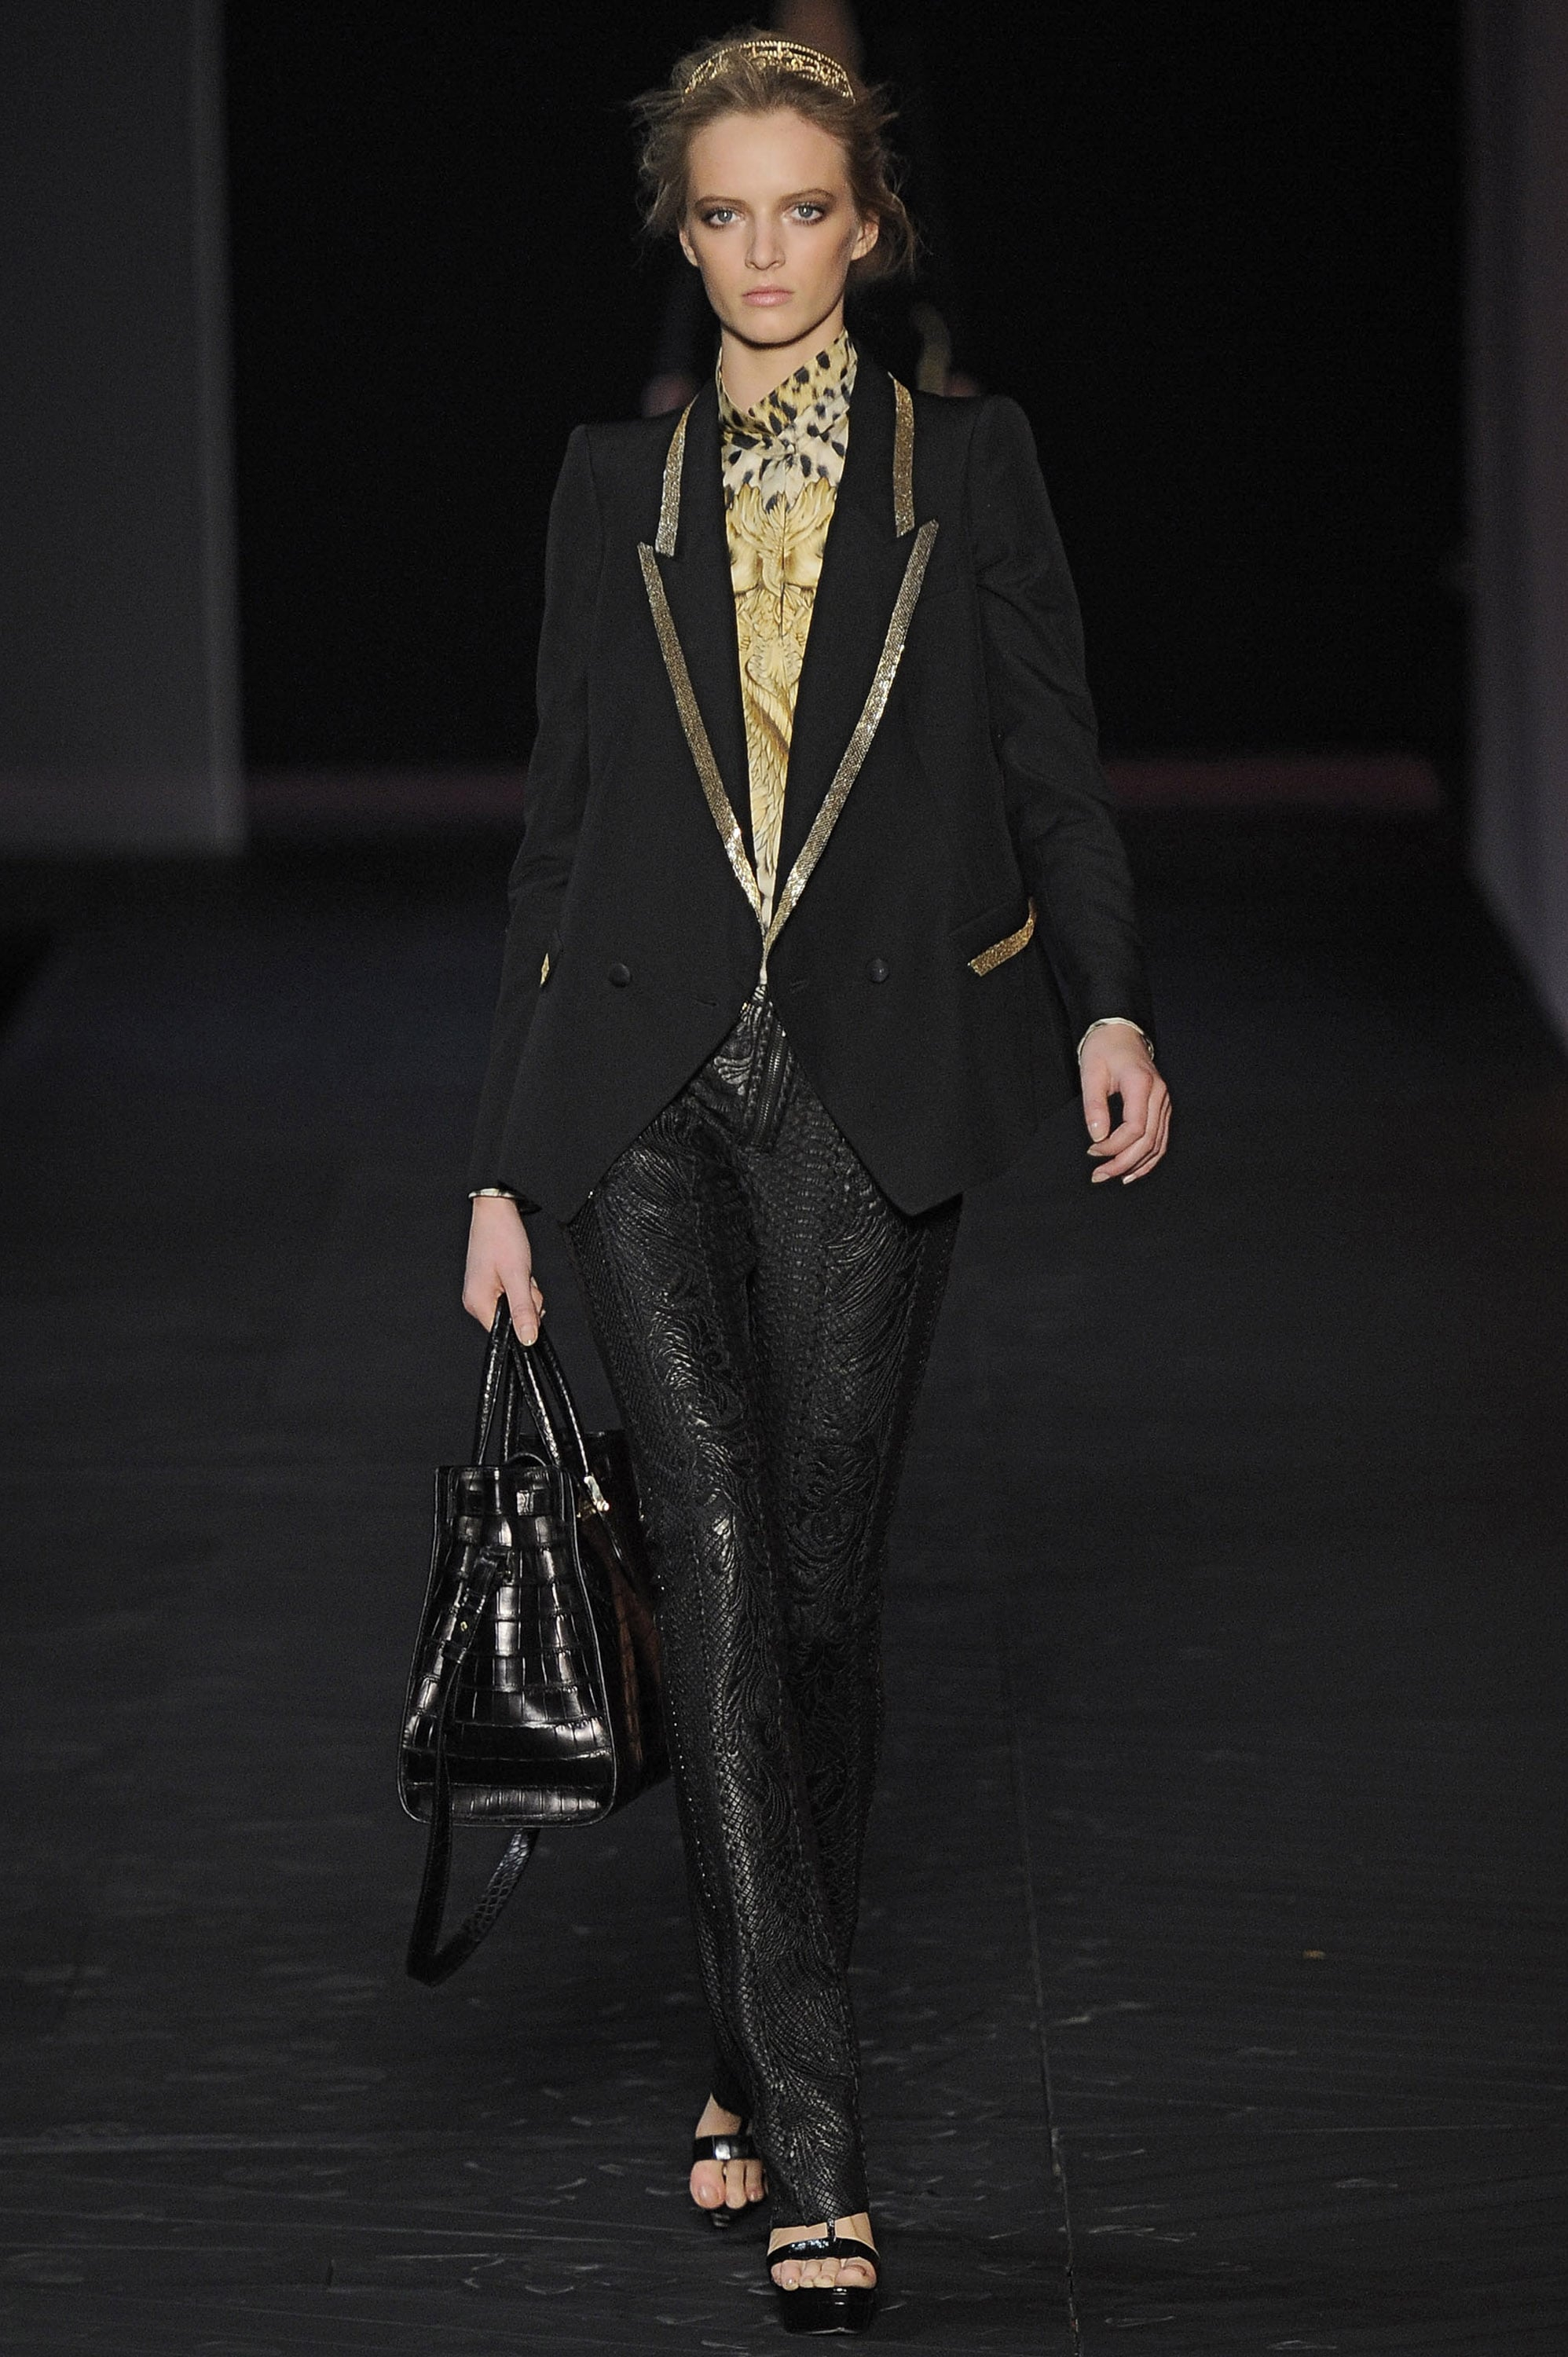 Roberto Cavalli, Spring-Summer 2011 at Milan Fashion Week